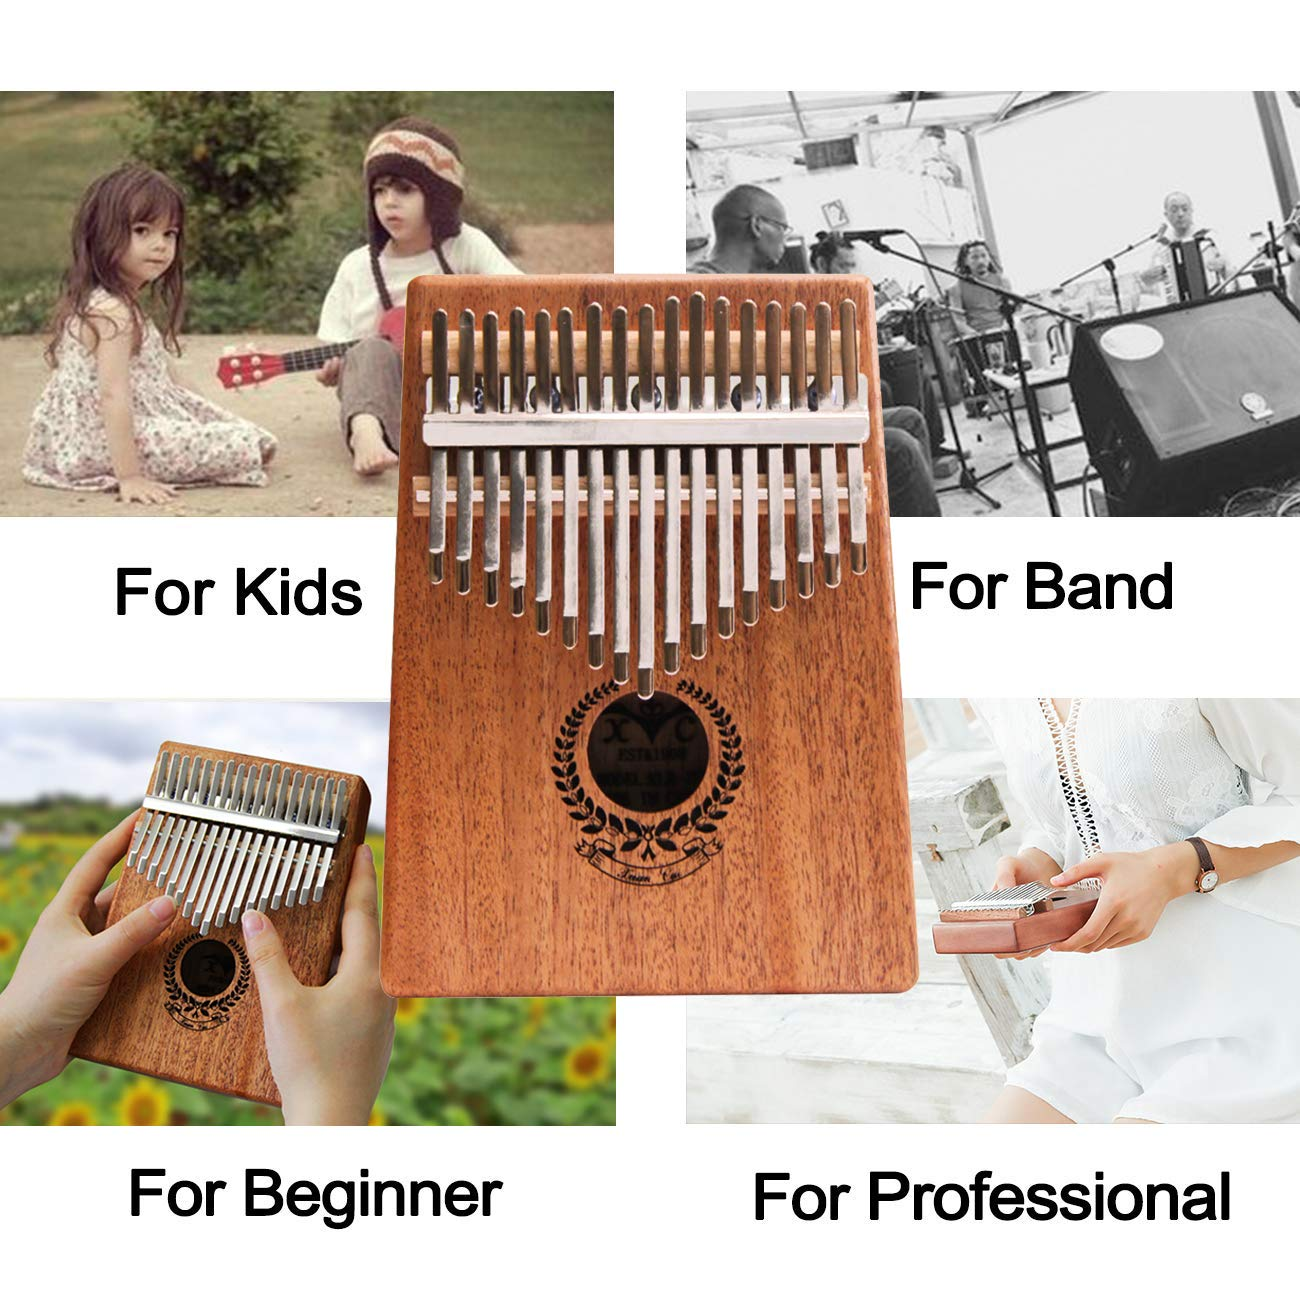 Kalimba 17 Keys Thumb Piano builts-in EVA high-performance protective box, tuning hammer and study instruction best gift For Kids Without Any Musical Basis Or Musician by Higohome (Image #7)